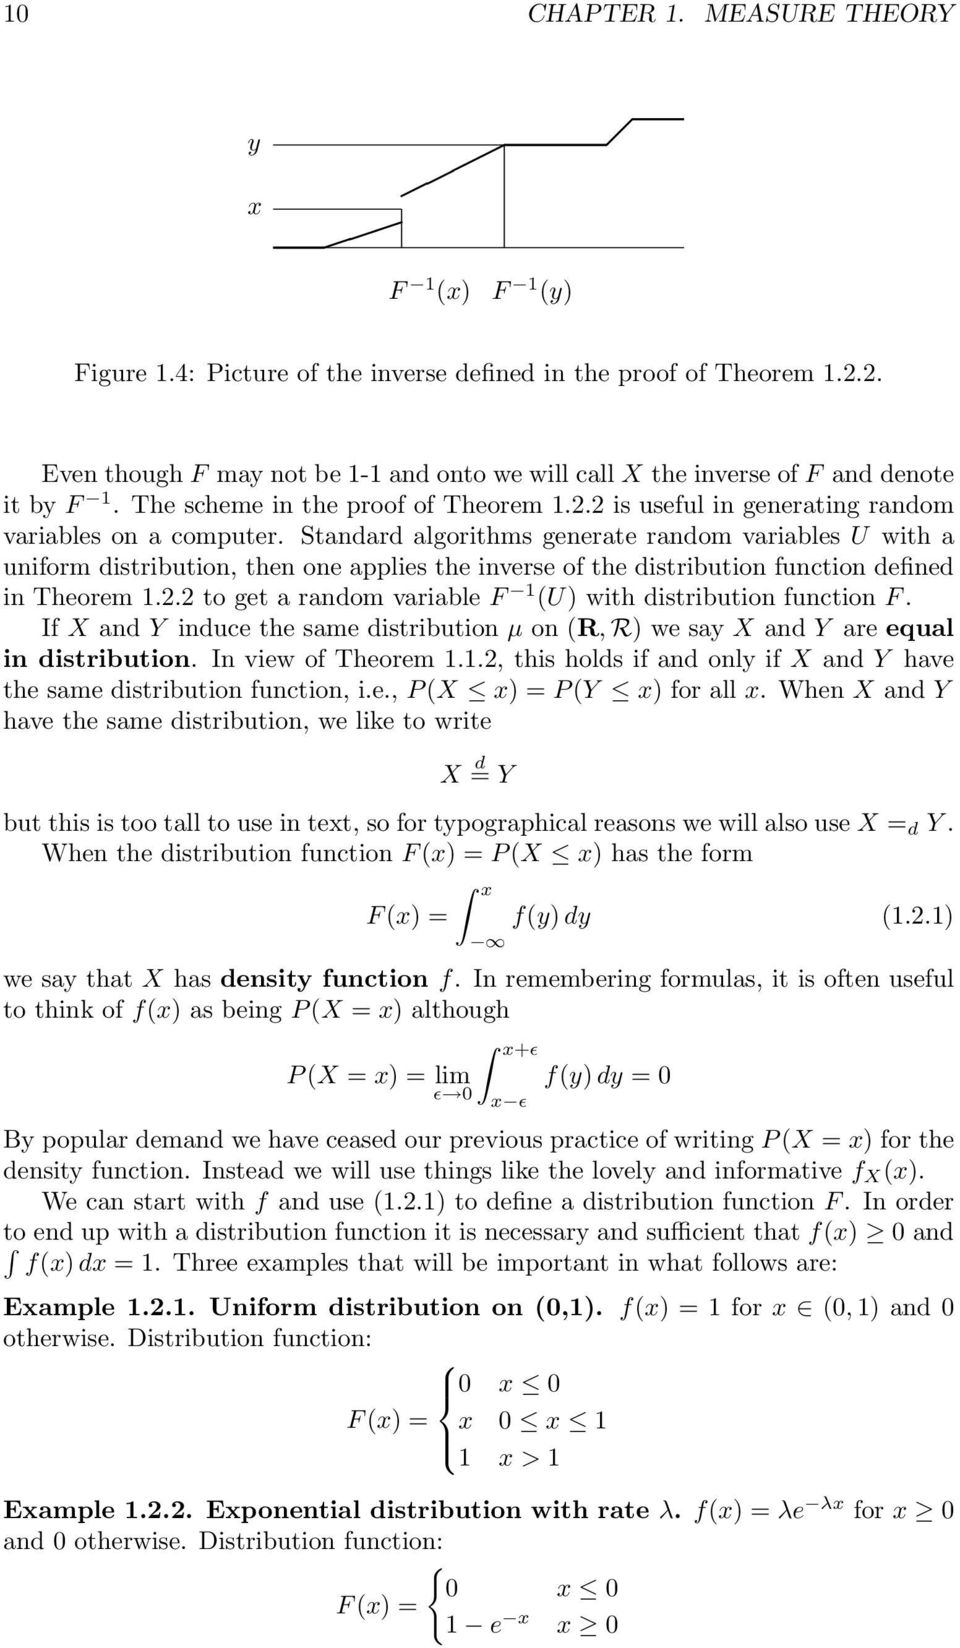 Standard algorithms generate random variables U with a uniform distribution, then one applies the inverse of the distribution function defined in Theorem 1.2.